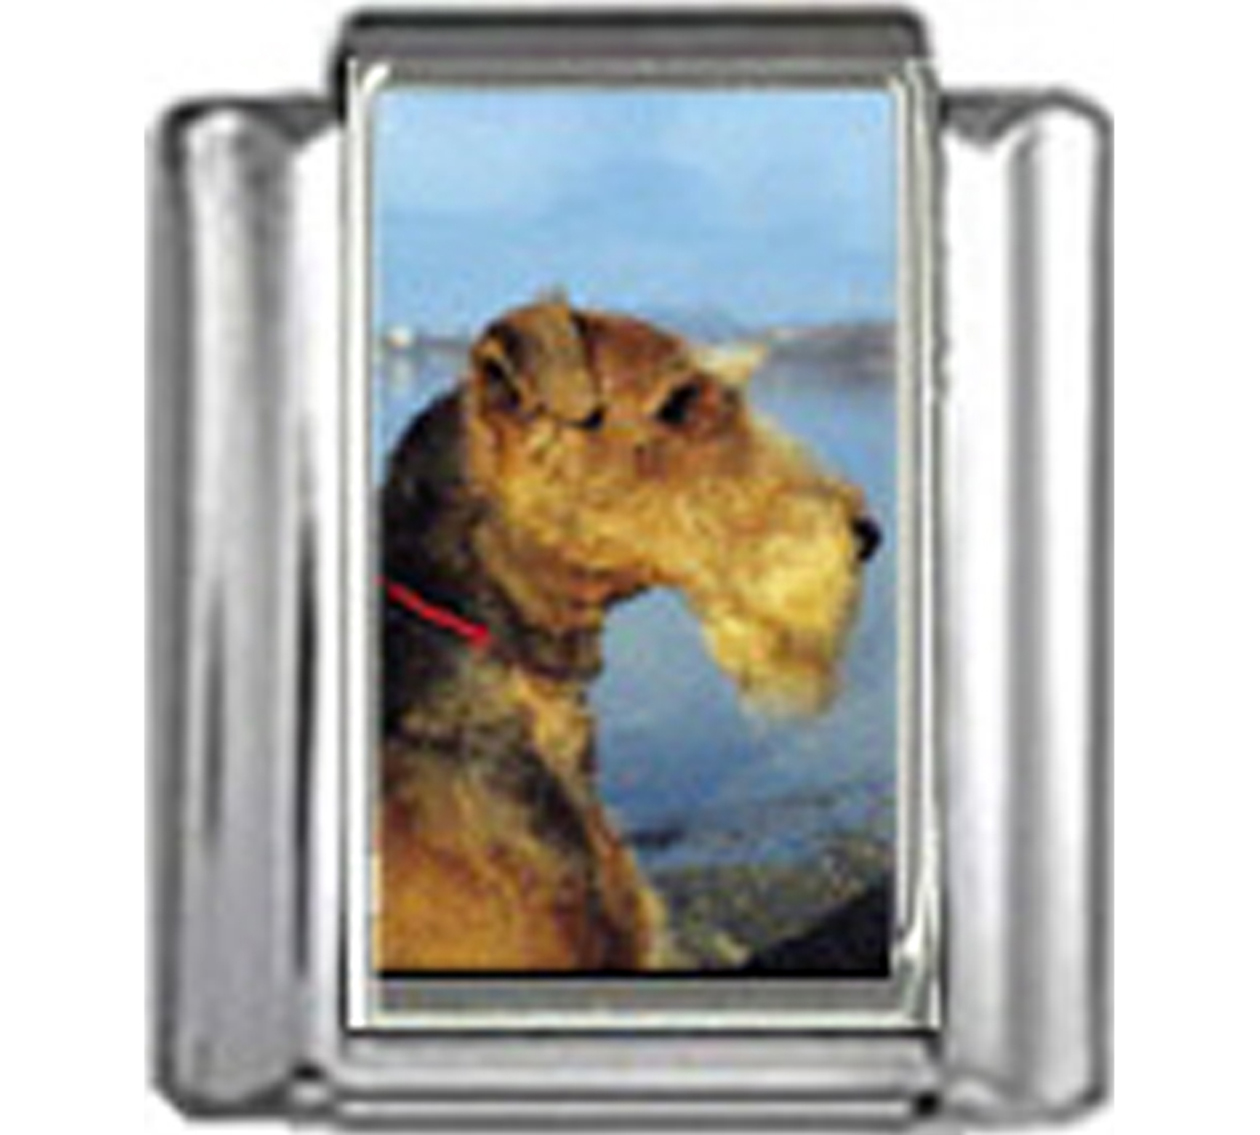 DG022-Airedale-Terrier-Dog-1